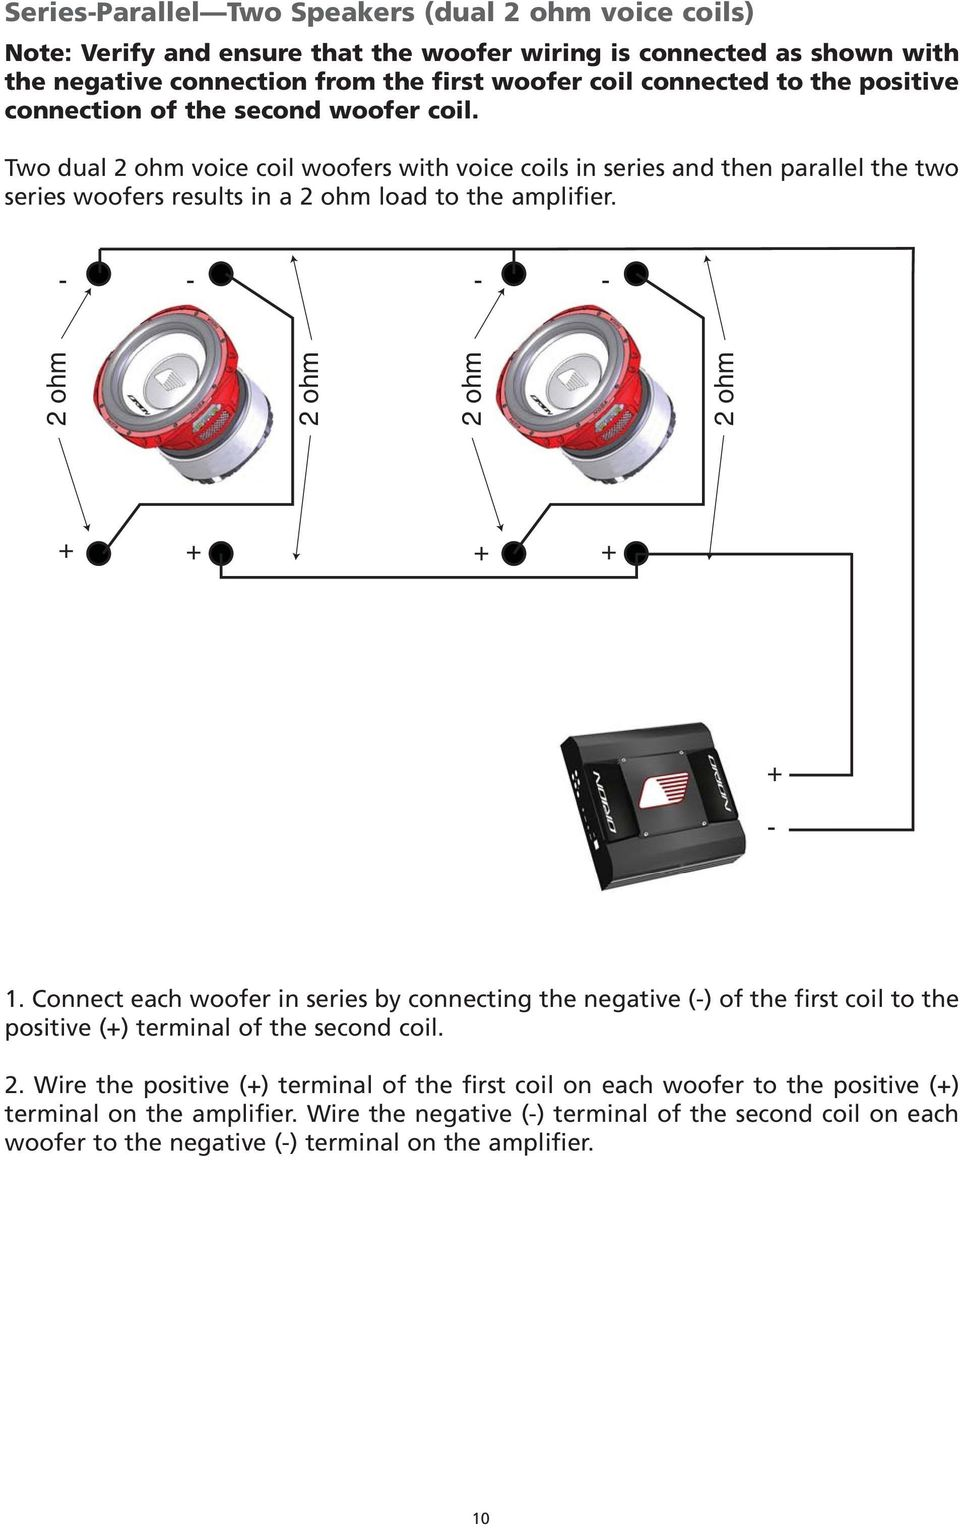 medium resolution of two dual voice coil woofers with voice coils in series and then parallel the two series